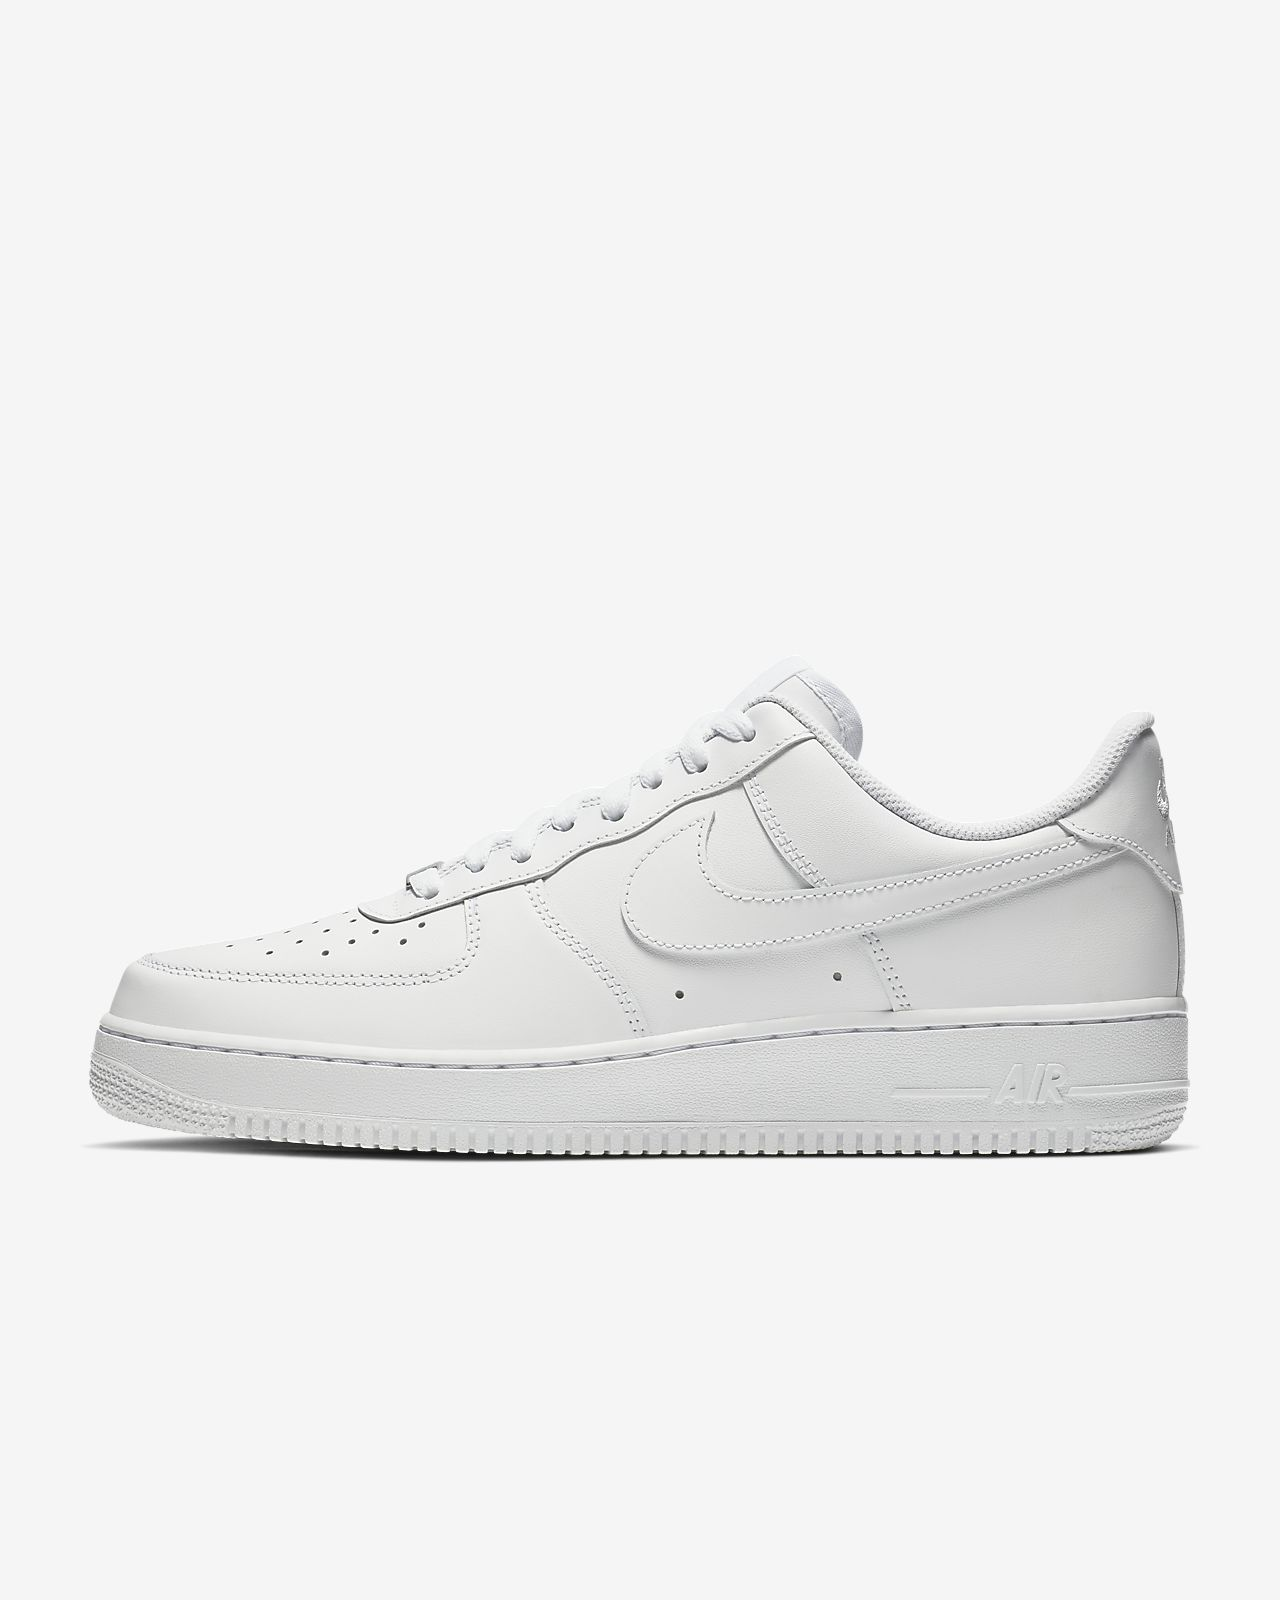 official photos b2180 3d4e9 ... Chaussure Nike Air Force 1  07